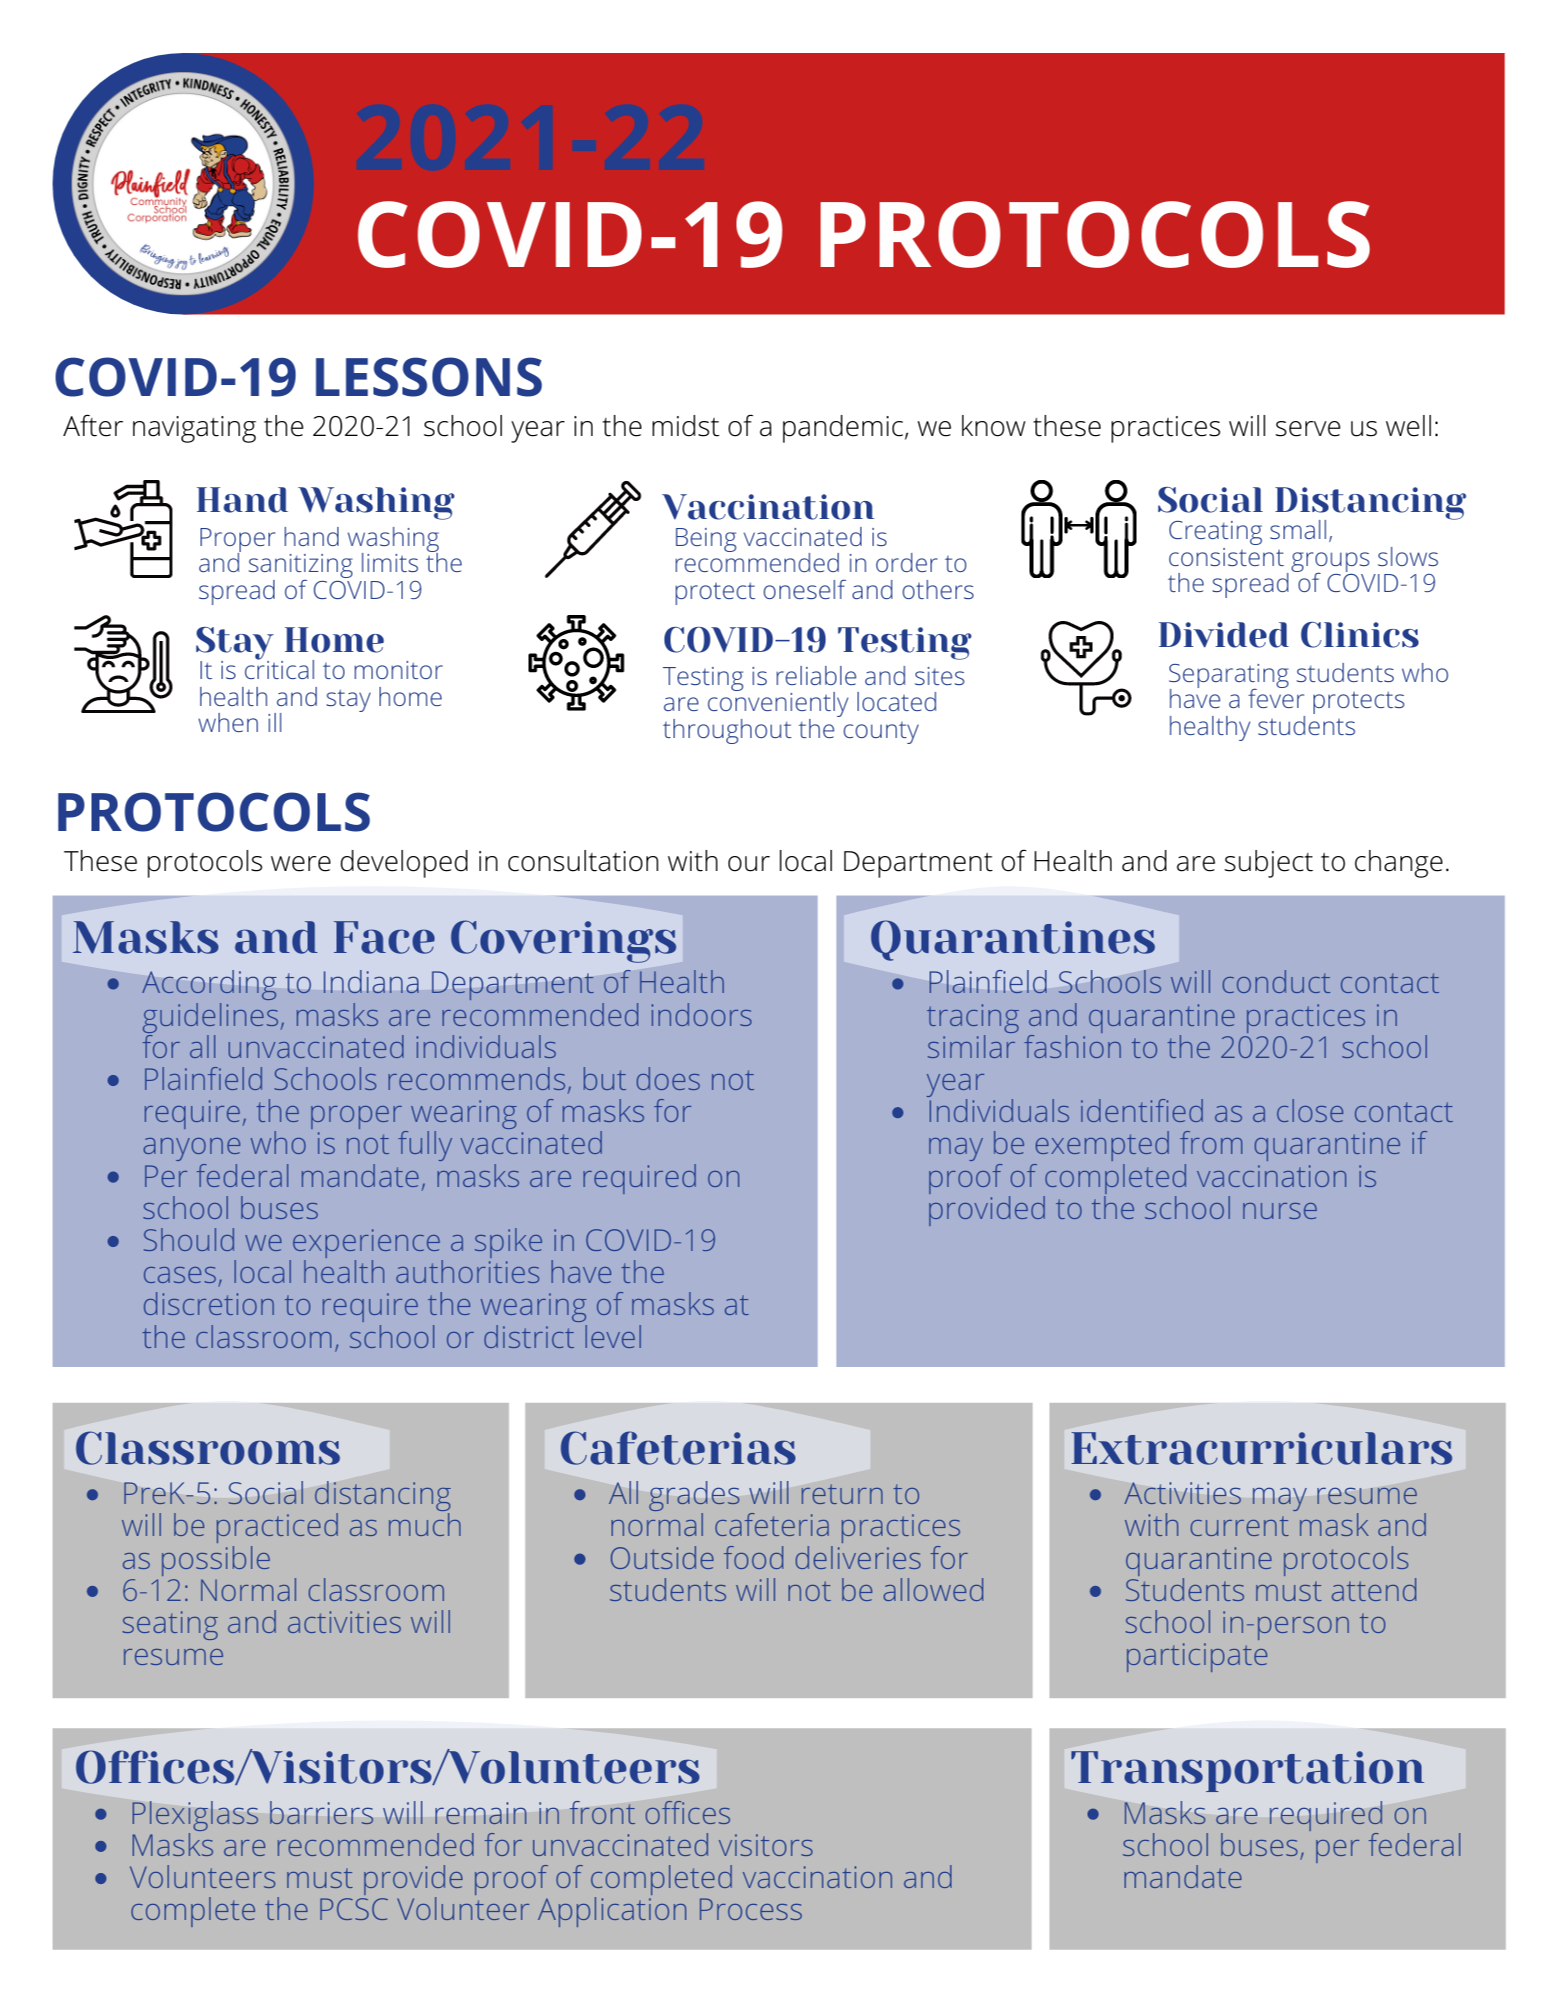 Specific COVID-19 protocols in place at Plainfield Schools